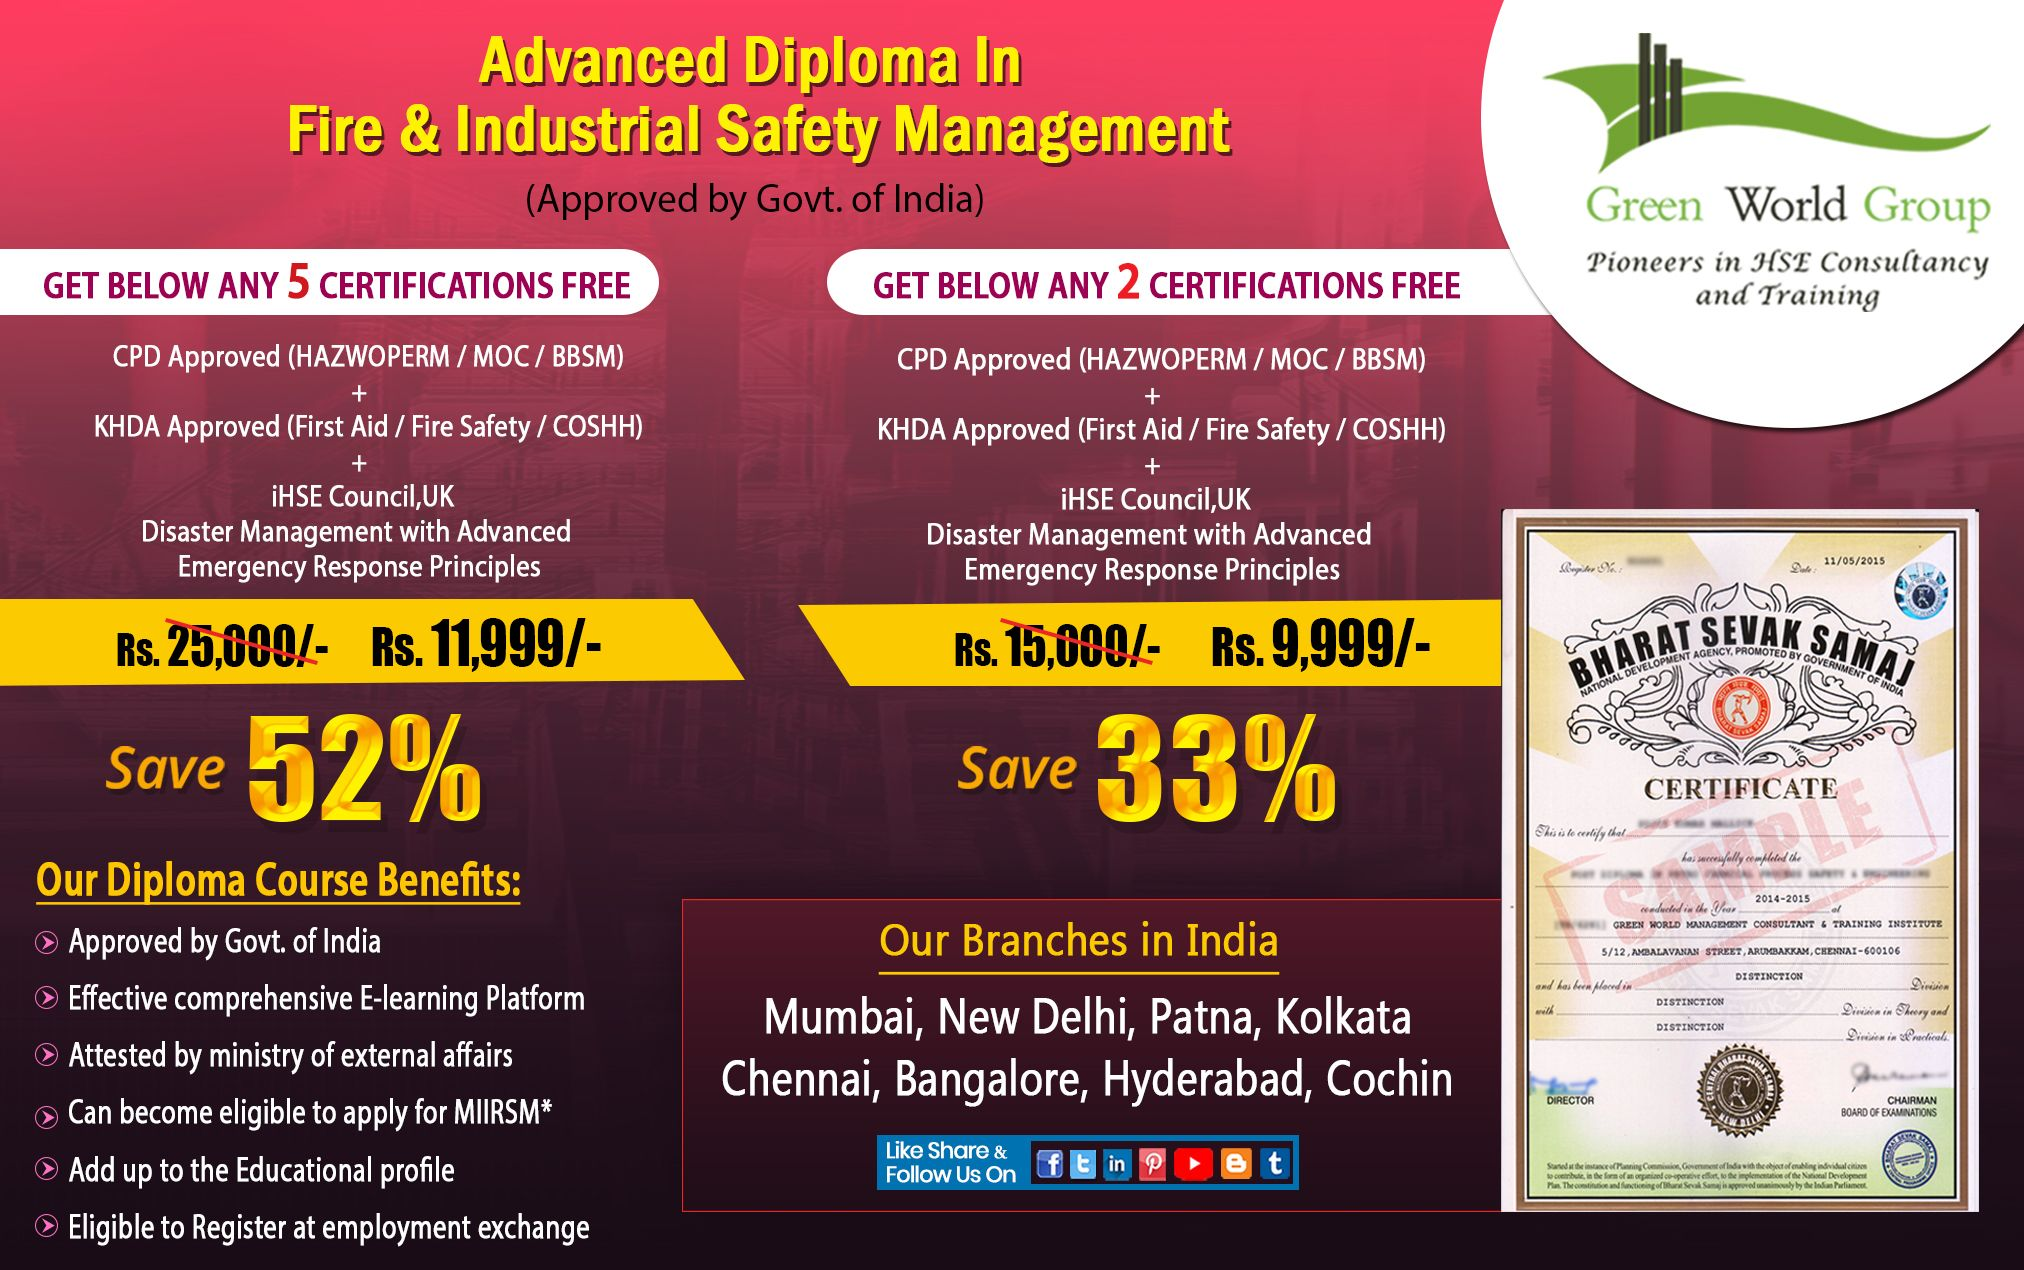 ADVANCED DIPLOMA IN FIRE & INDUSTRIAL SAFETY MANAGEMENT